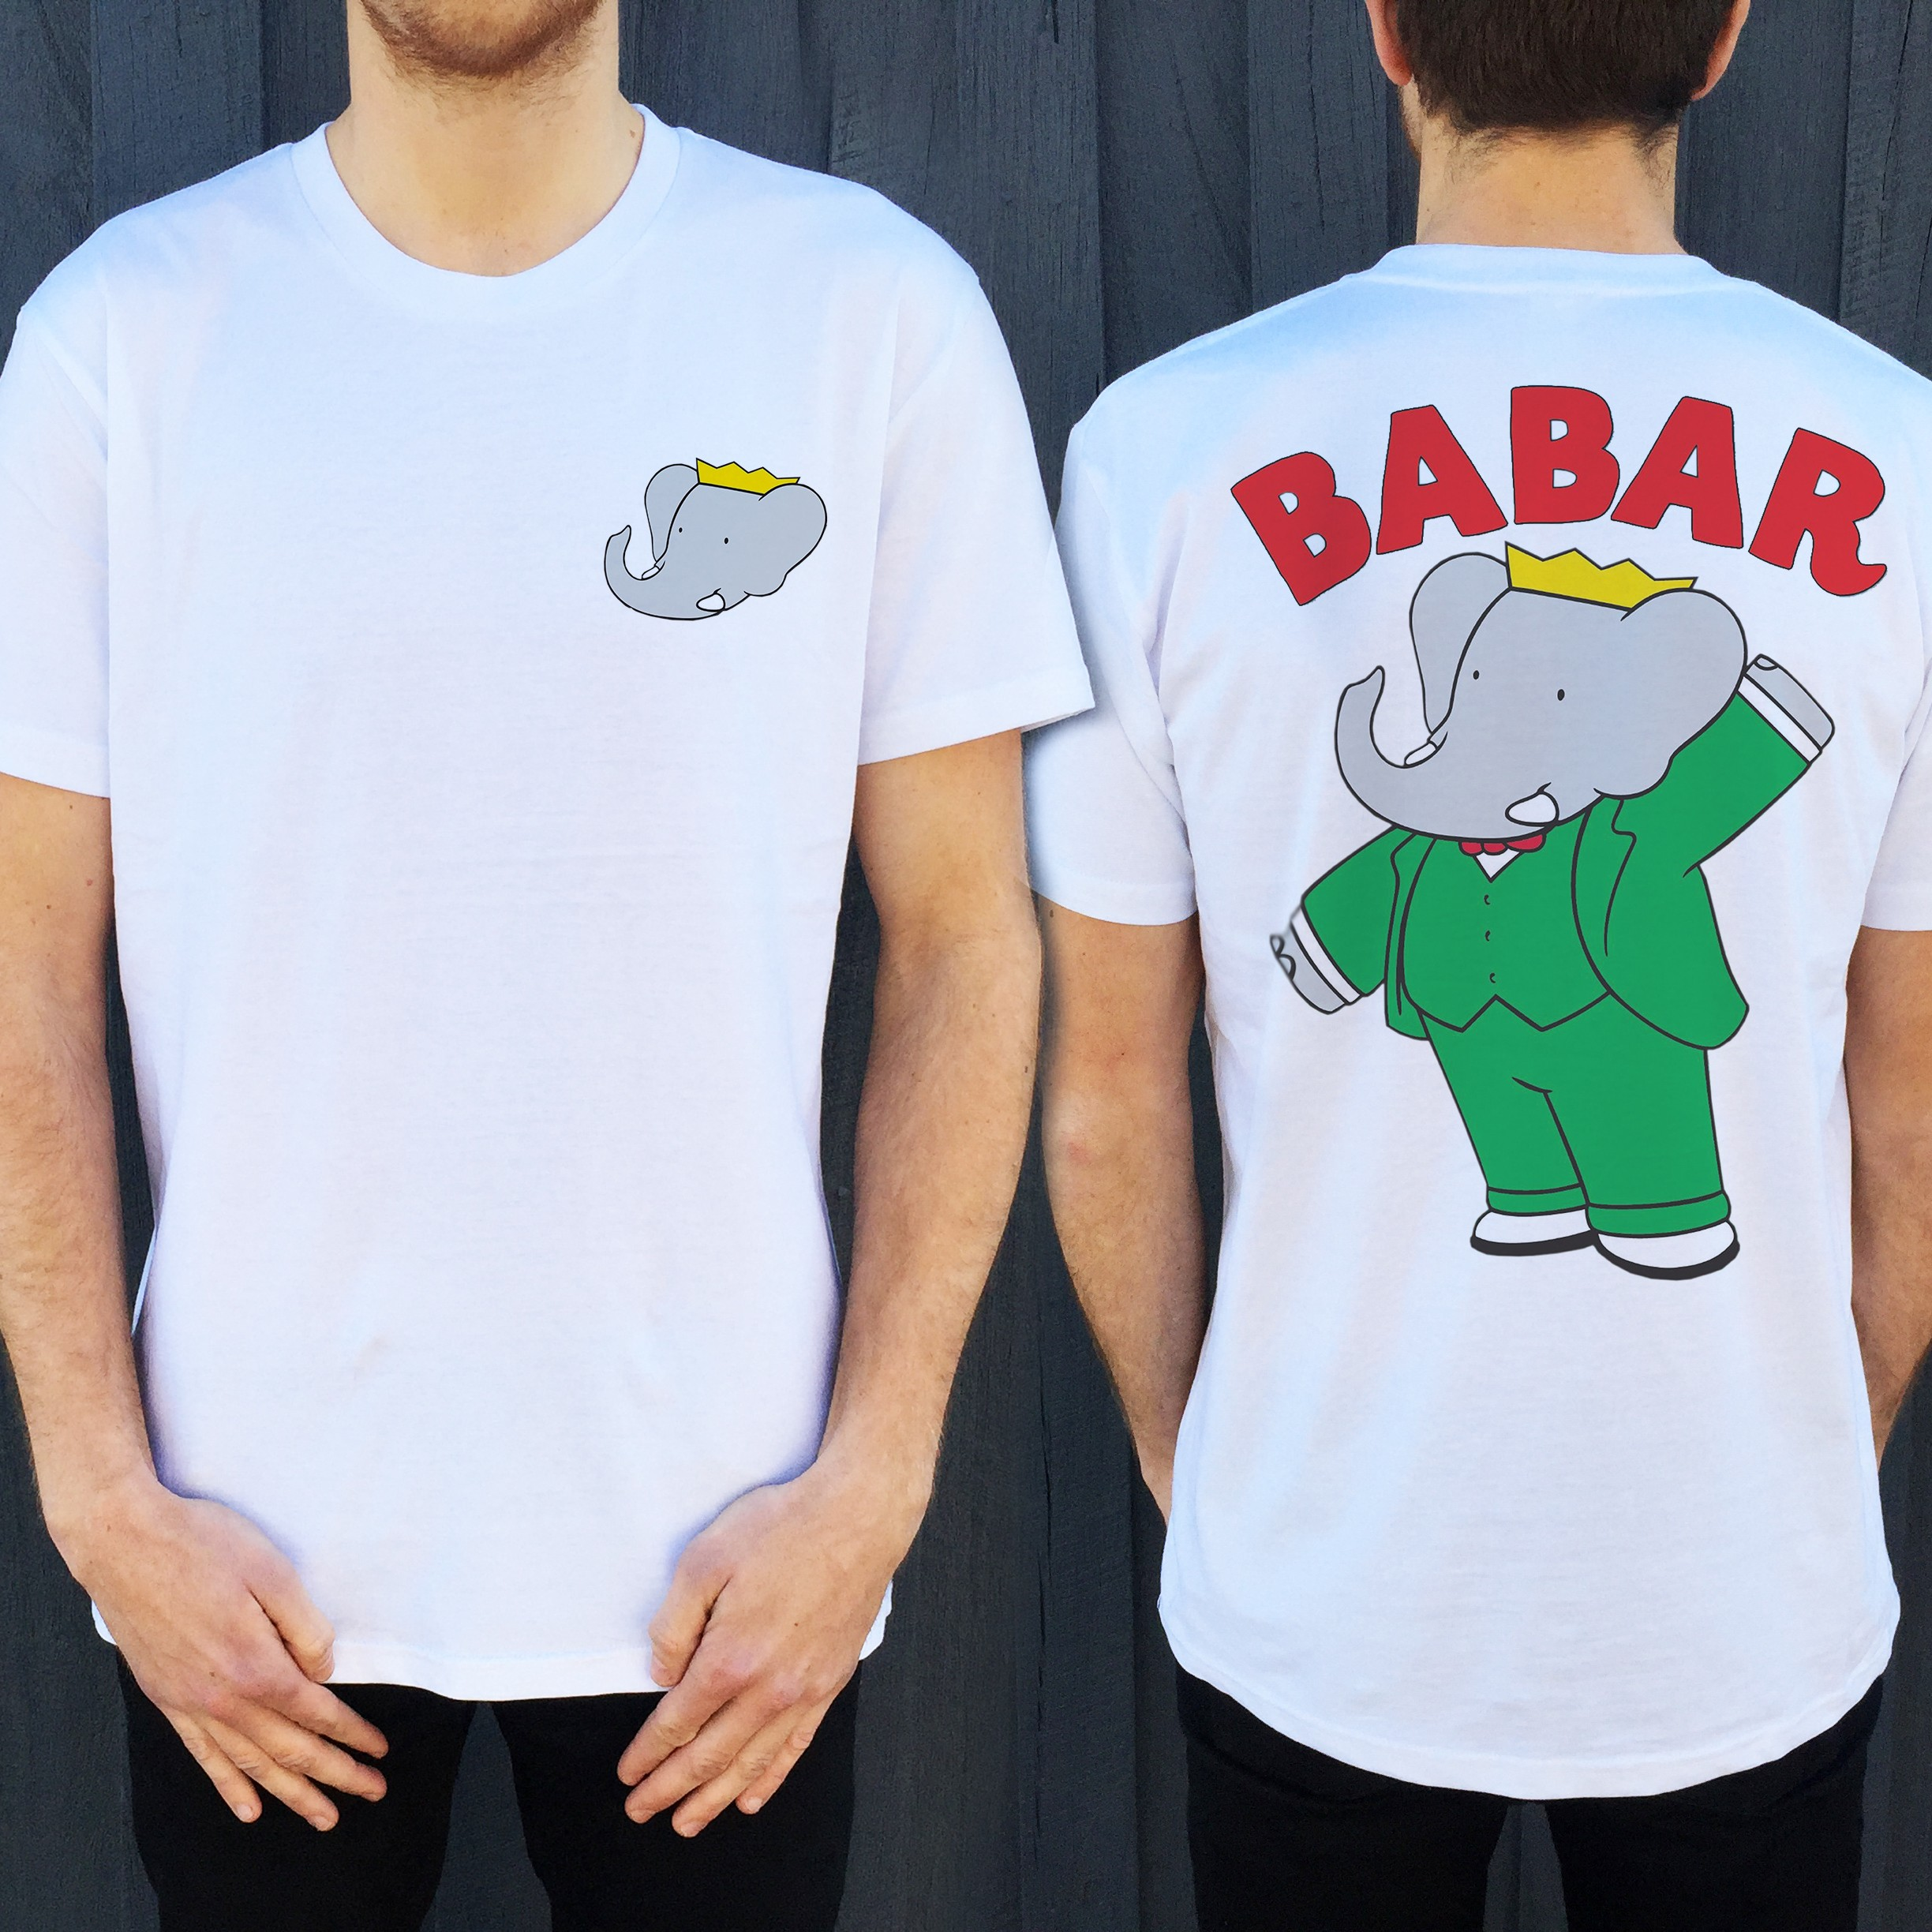 BABAR FRONT AND BACK TEE